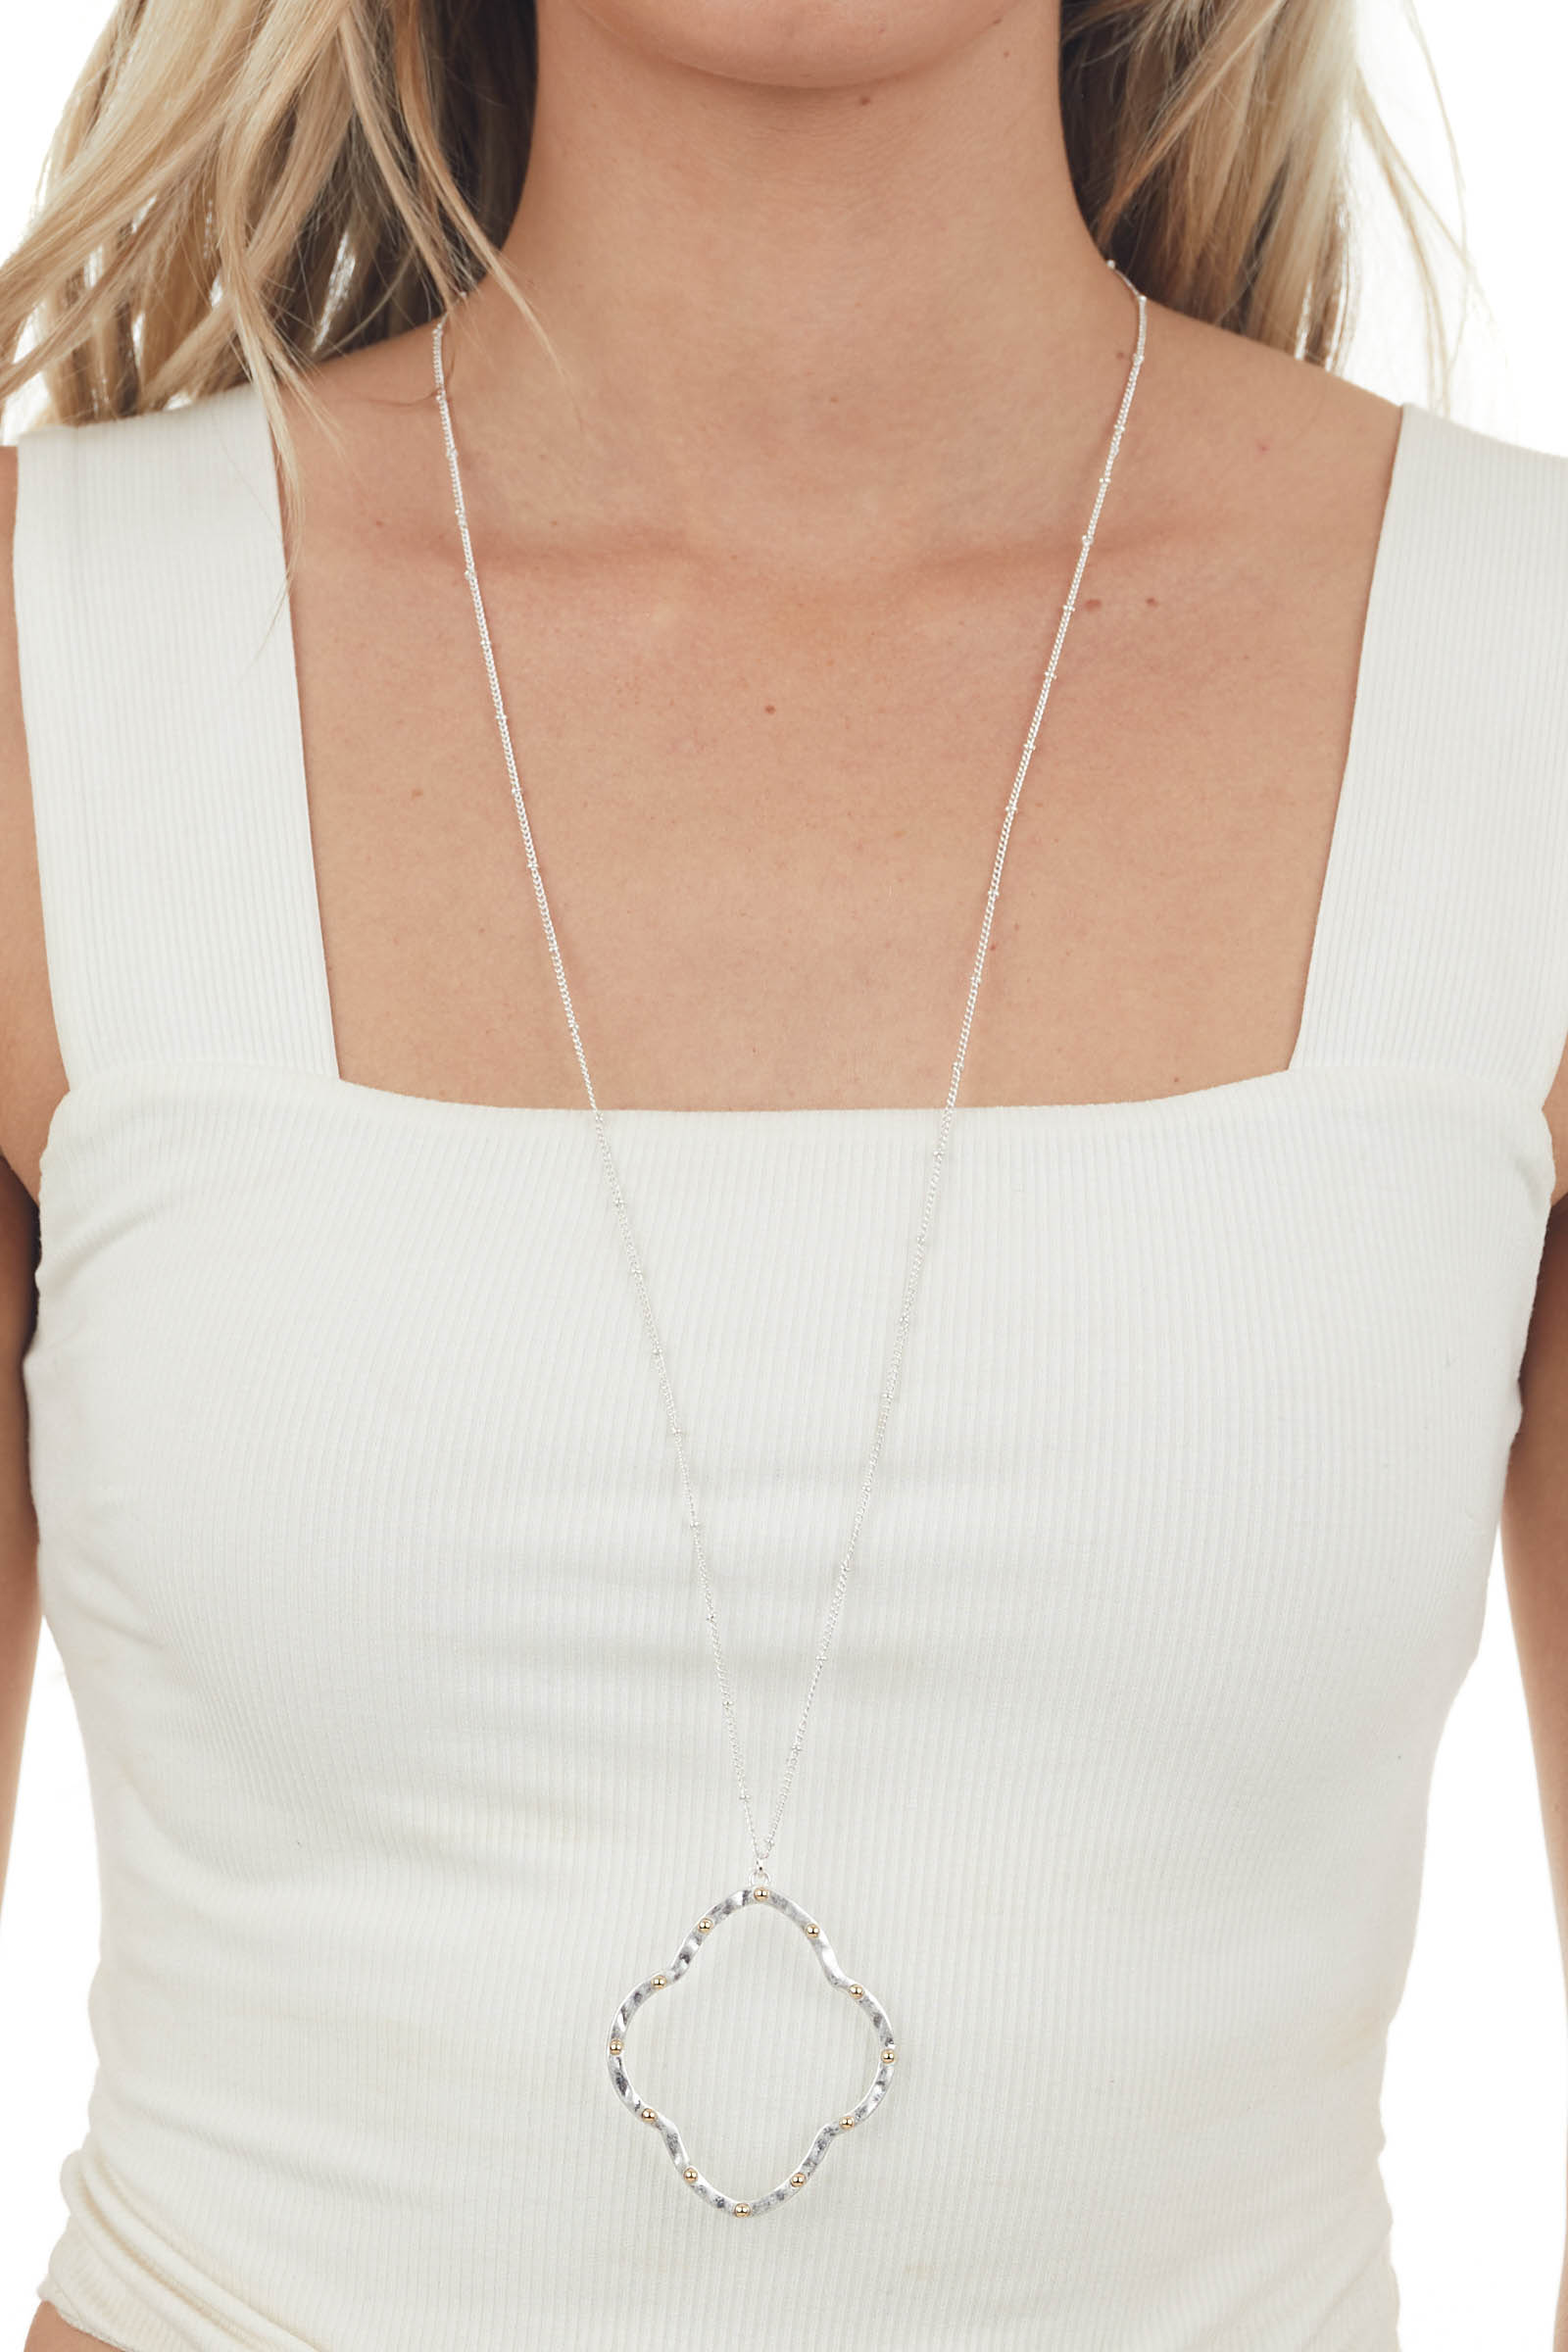 Silver Clover Pendant Necklace with Pearls